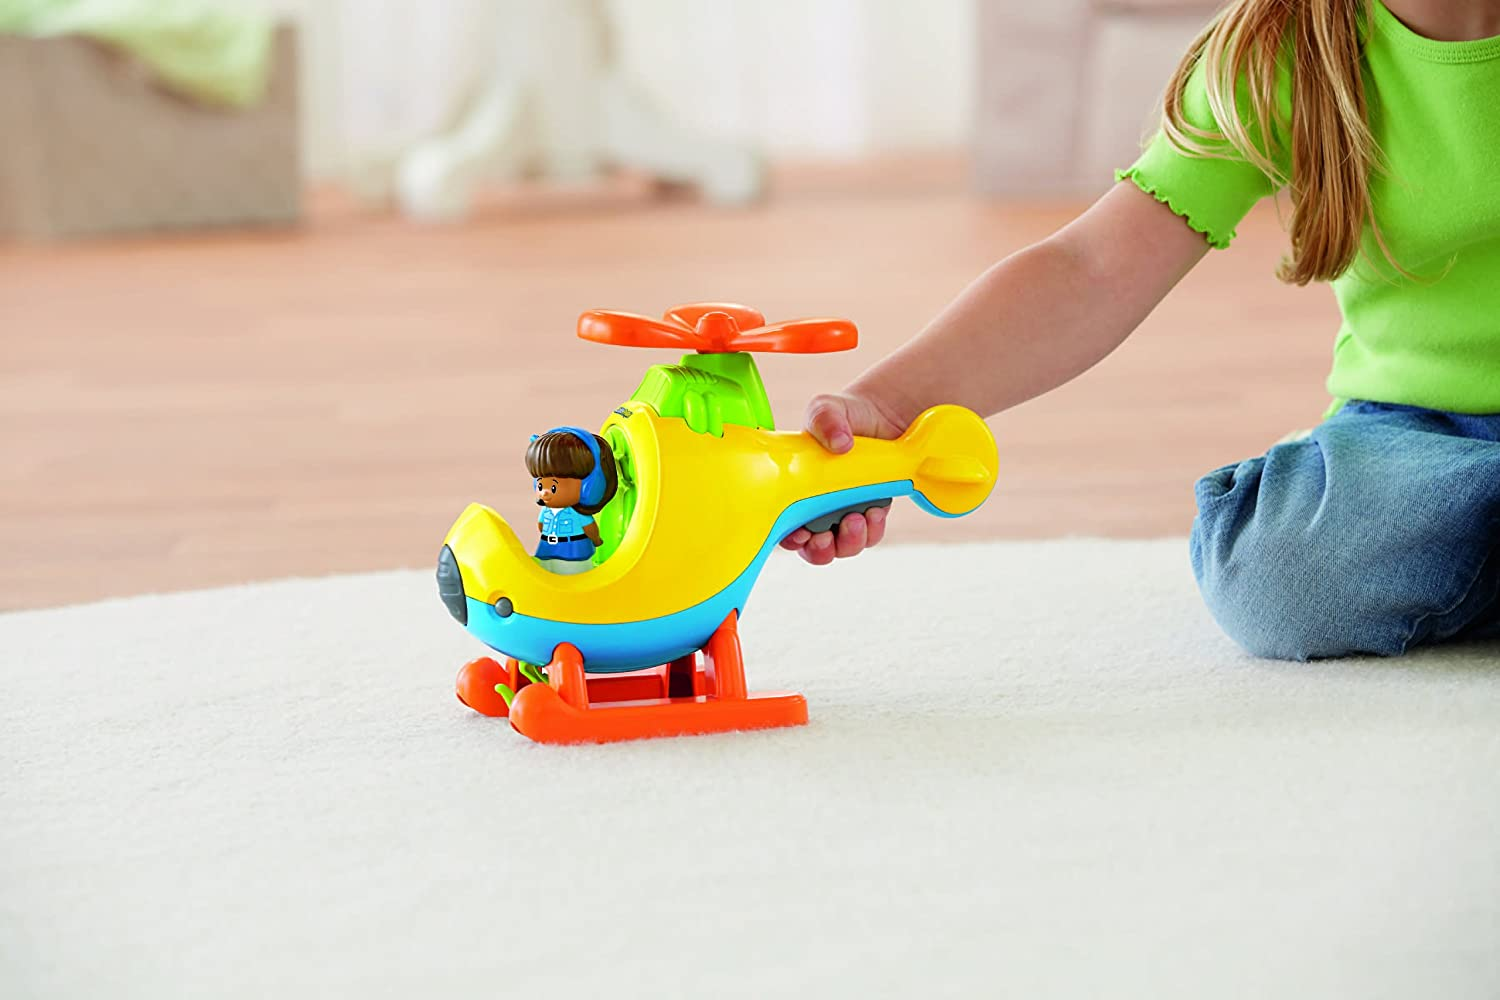 amazon com fisher price little people helicopter toys u0026 games